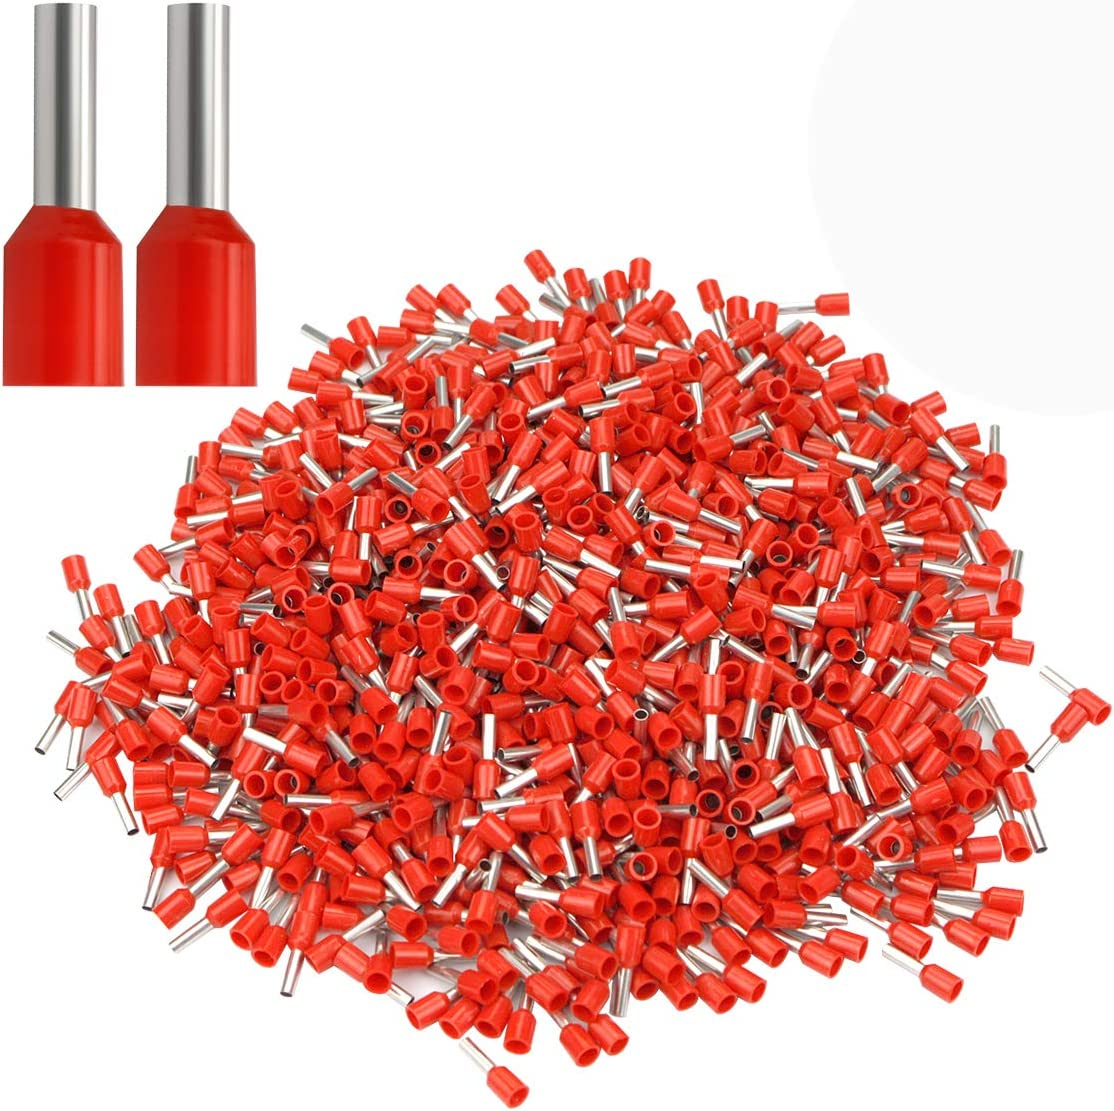 XHF 1000 PCS AWG 18 Mail order Ferrule Insulated Crimper Te Pin Plier Our shop OFFers the best service Crimp